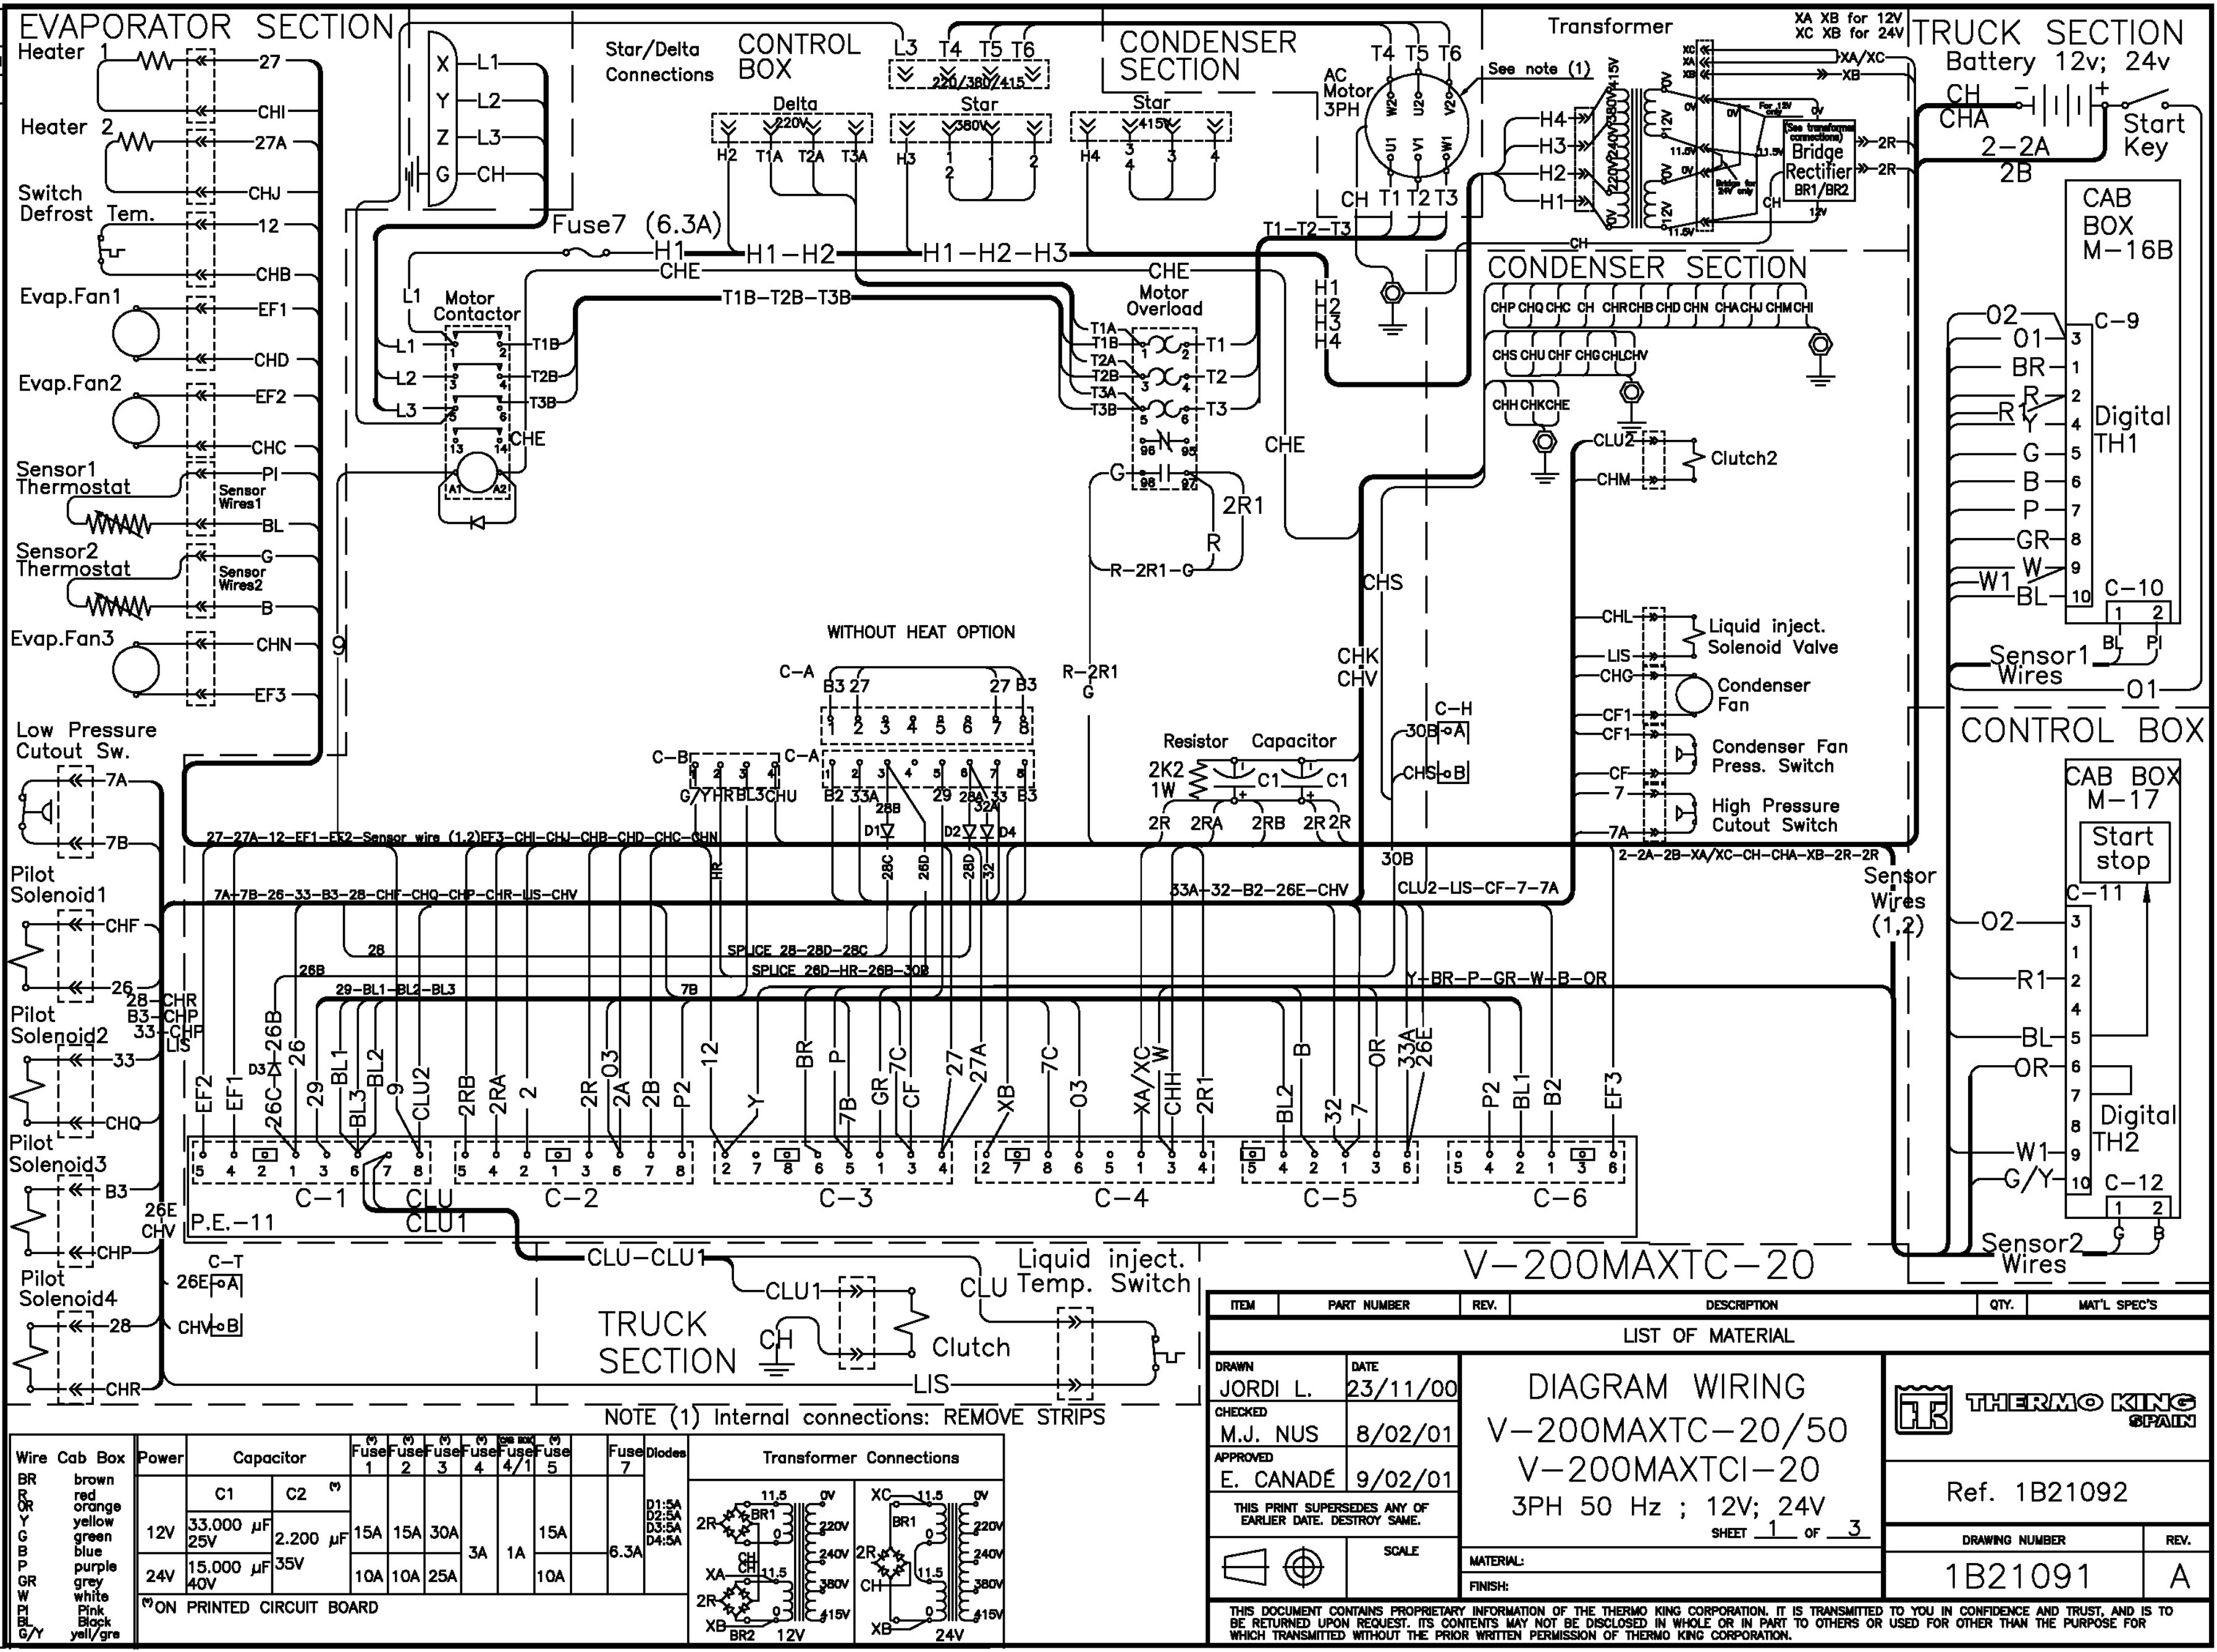 Thermo King V300 Wiring Diagram from almarka.ru